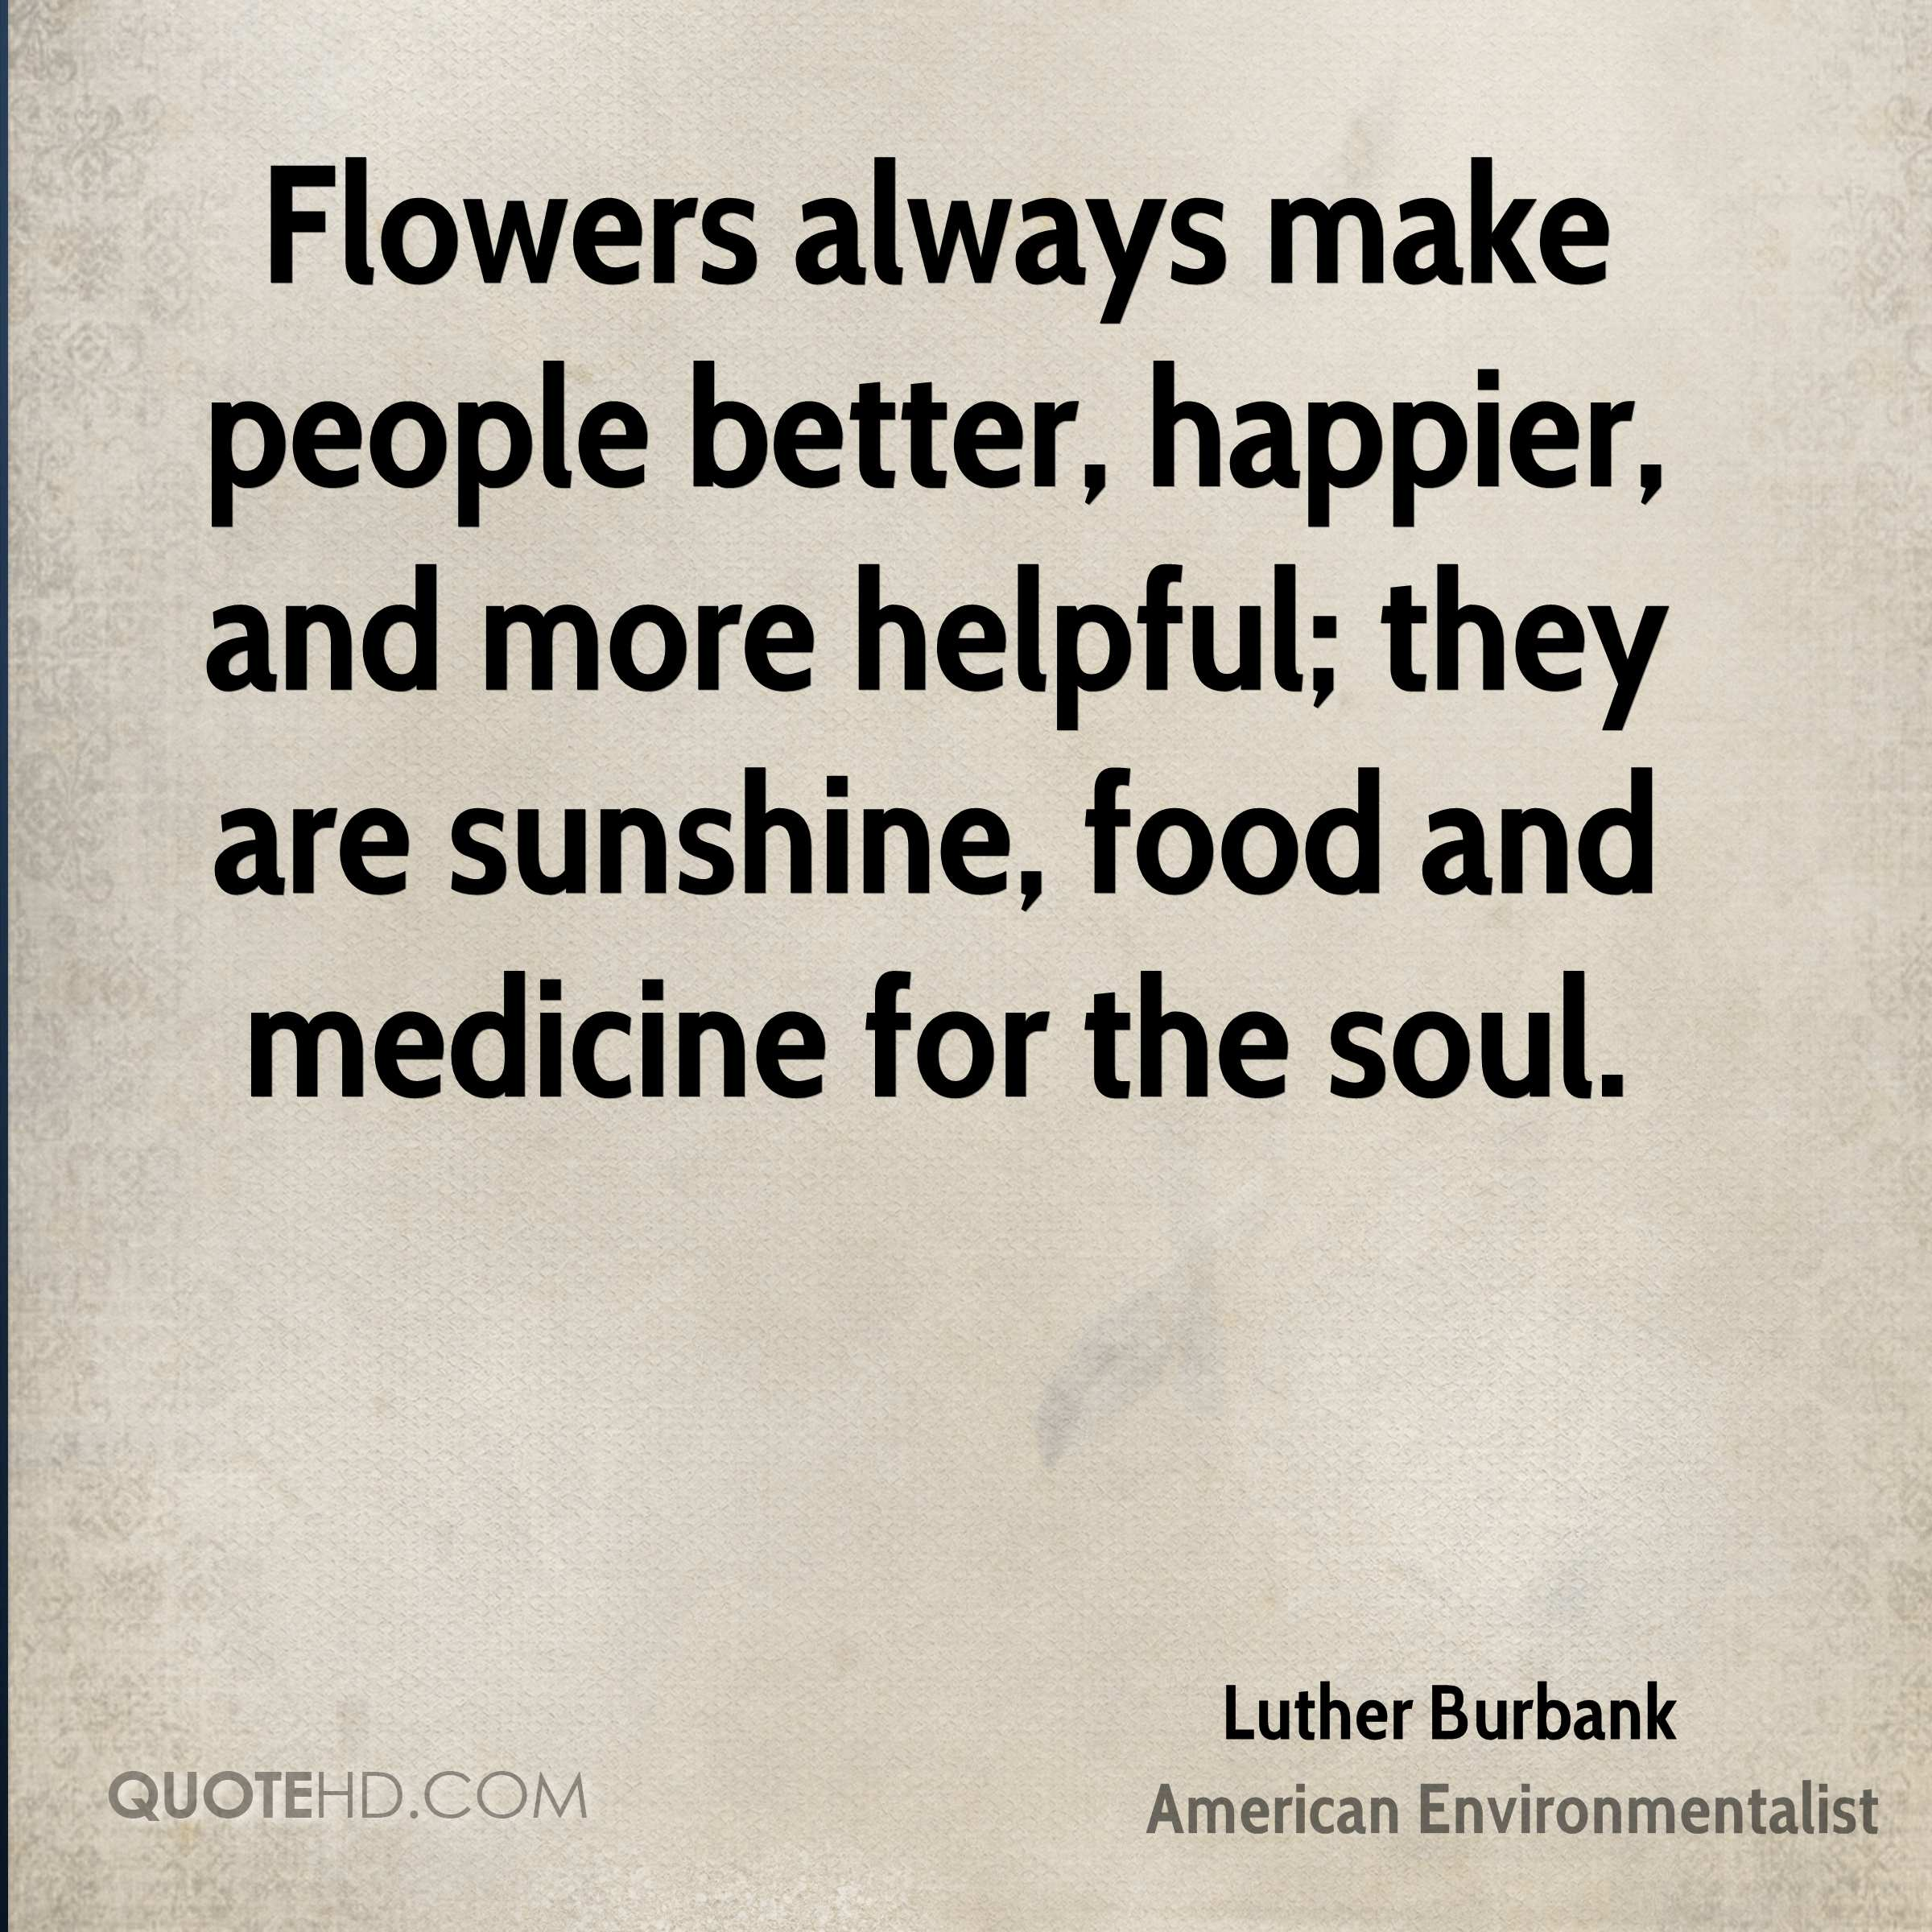 Flowers always make people better, happier, and more helpful; they are sunshine, food and medicine for the soul.